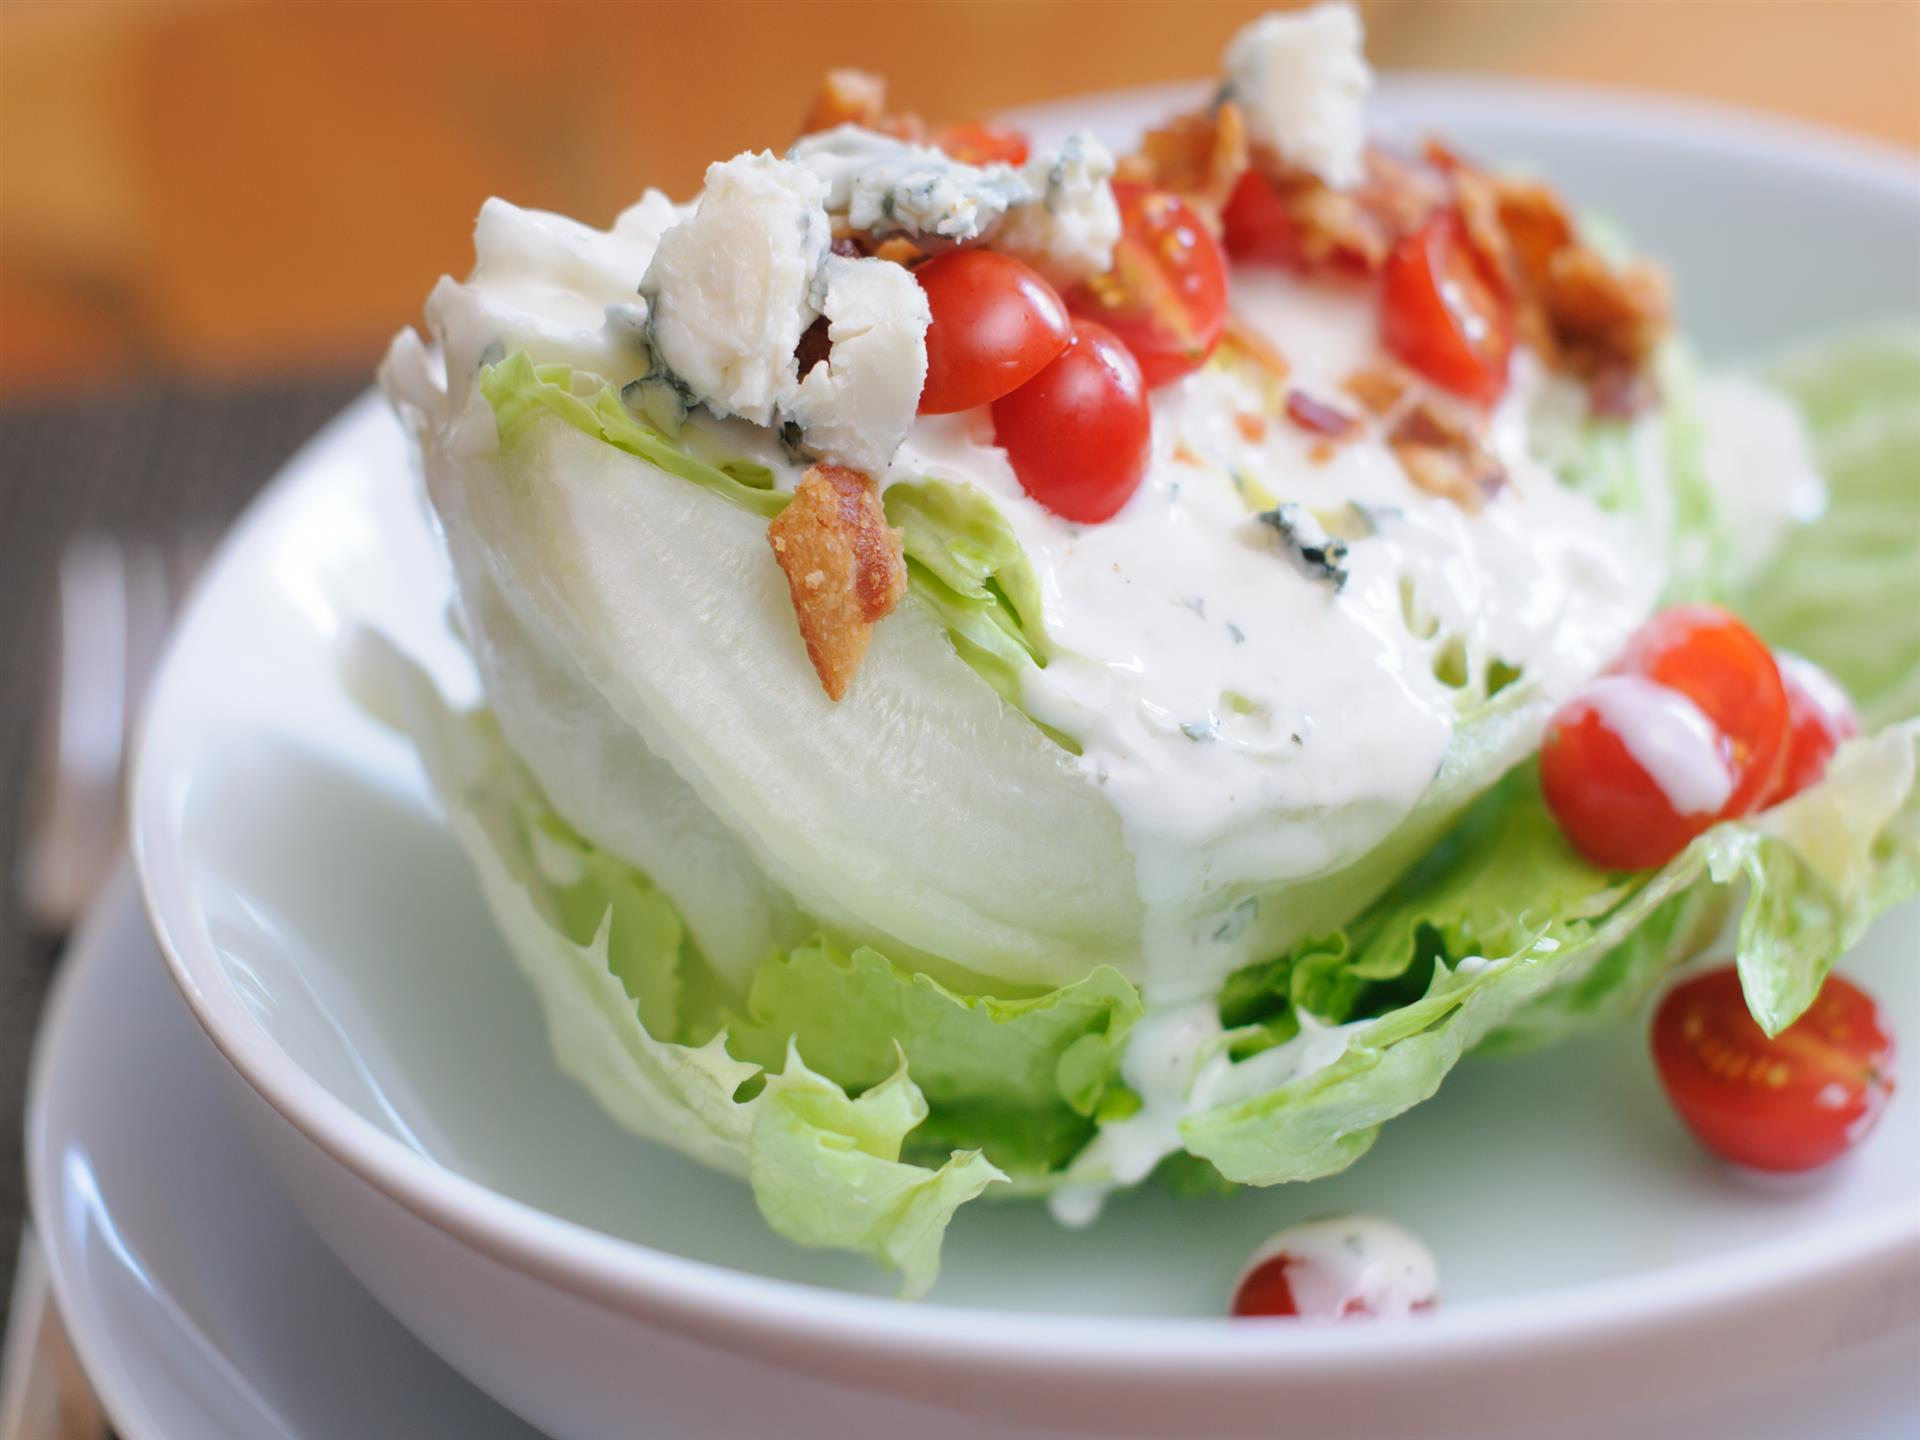 Wedge salad with an ice berg wedge,tomatoes, bleu cheese, and bacon on top